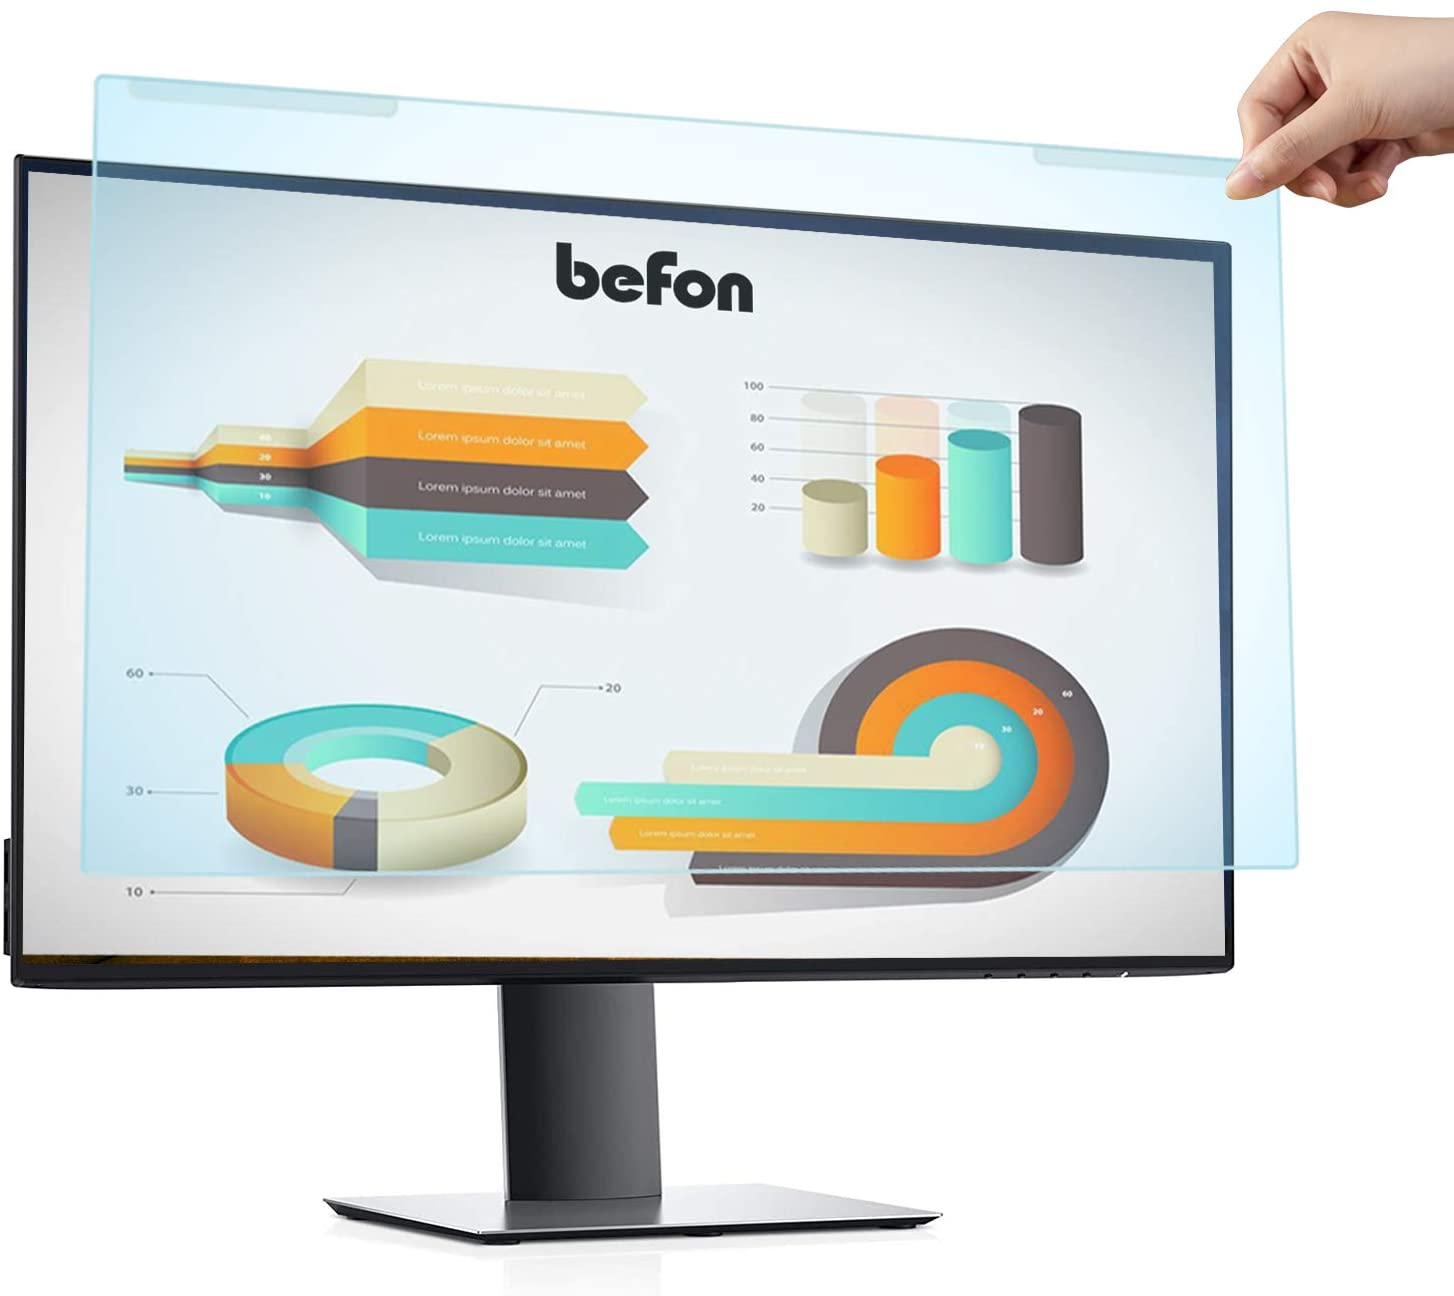 befon 24 inch Anti Blue Light Filter,Anti Glare Protector for 24 inch for PC computer,Protect your eyes from Blue Light Harm.